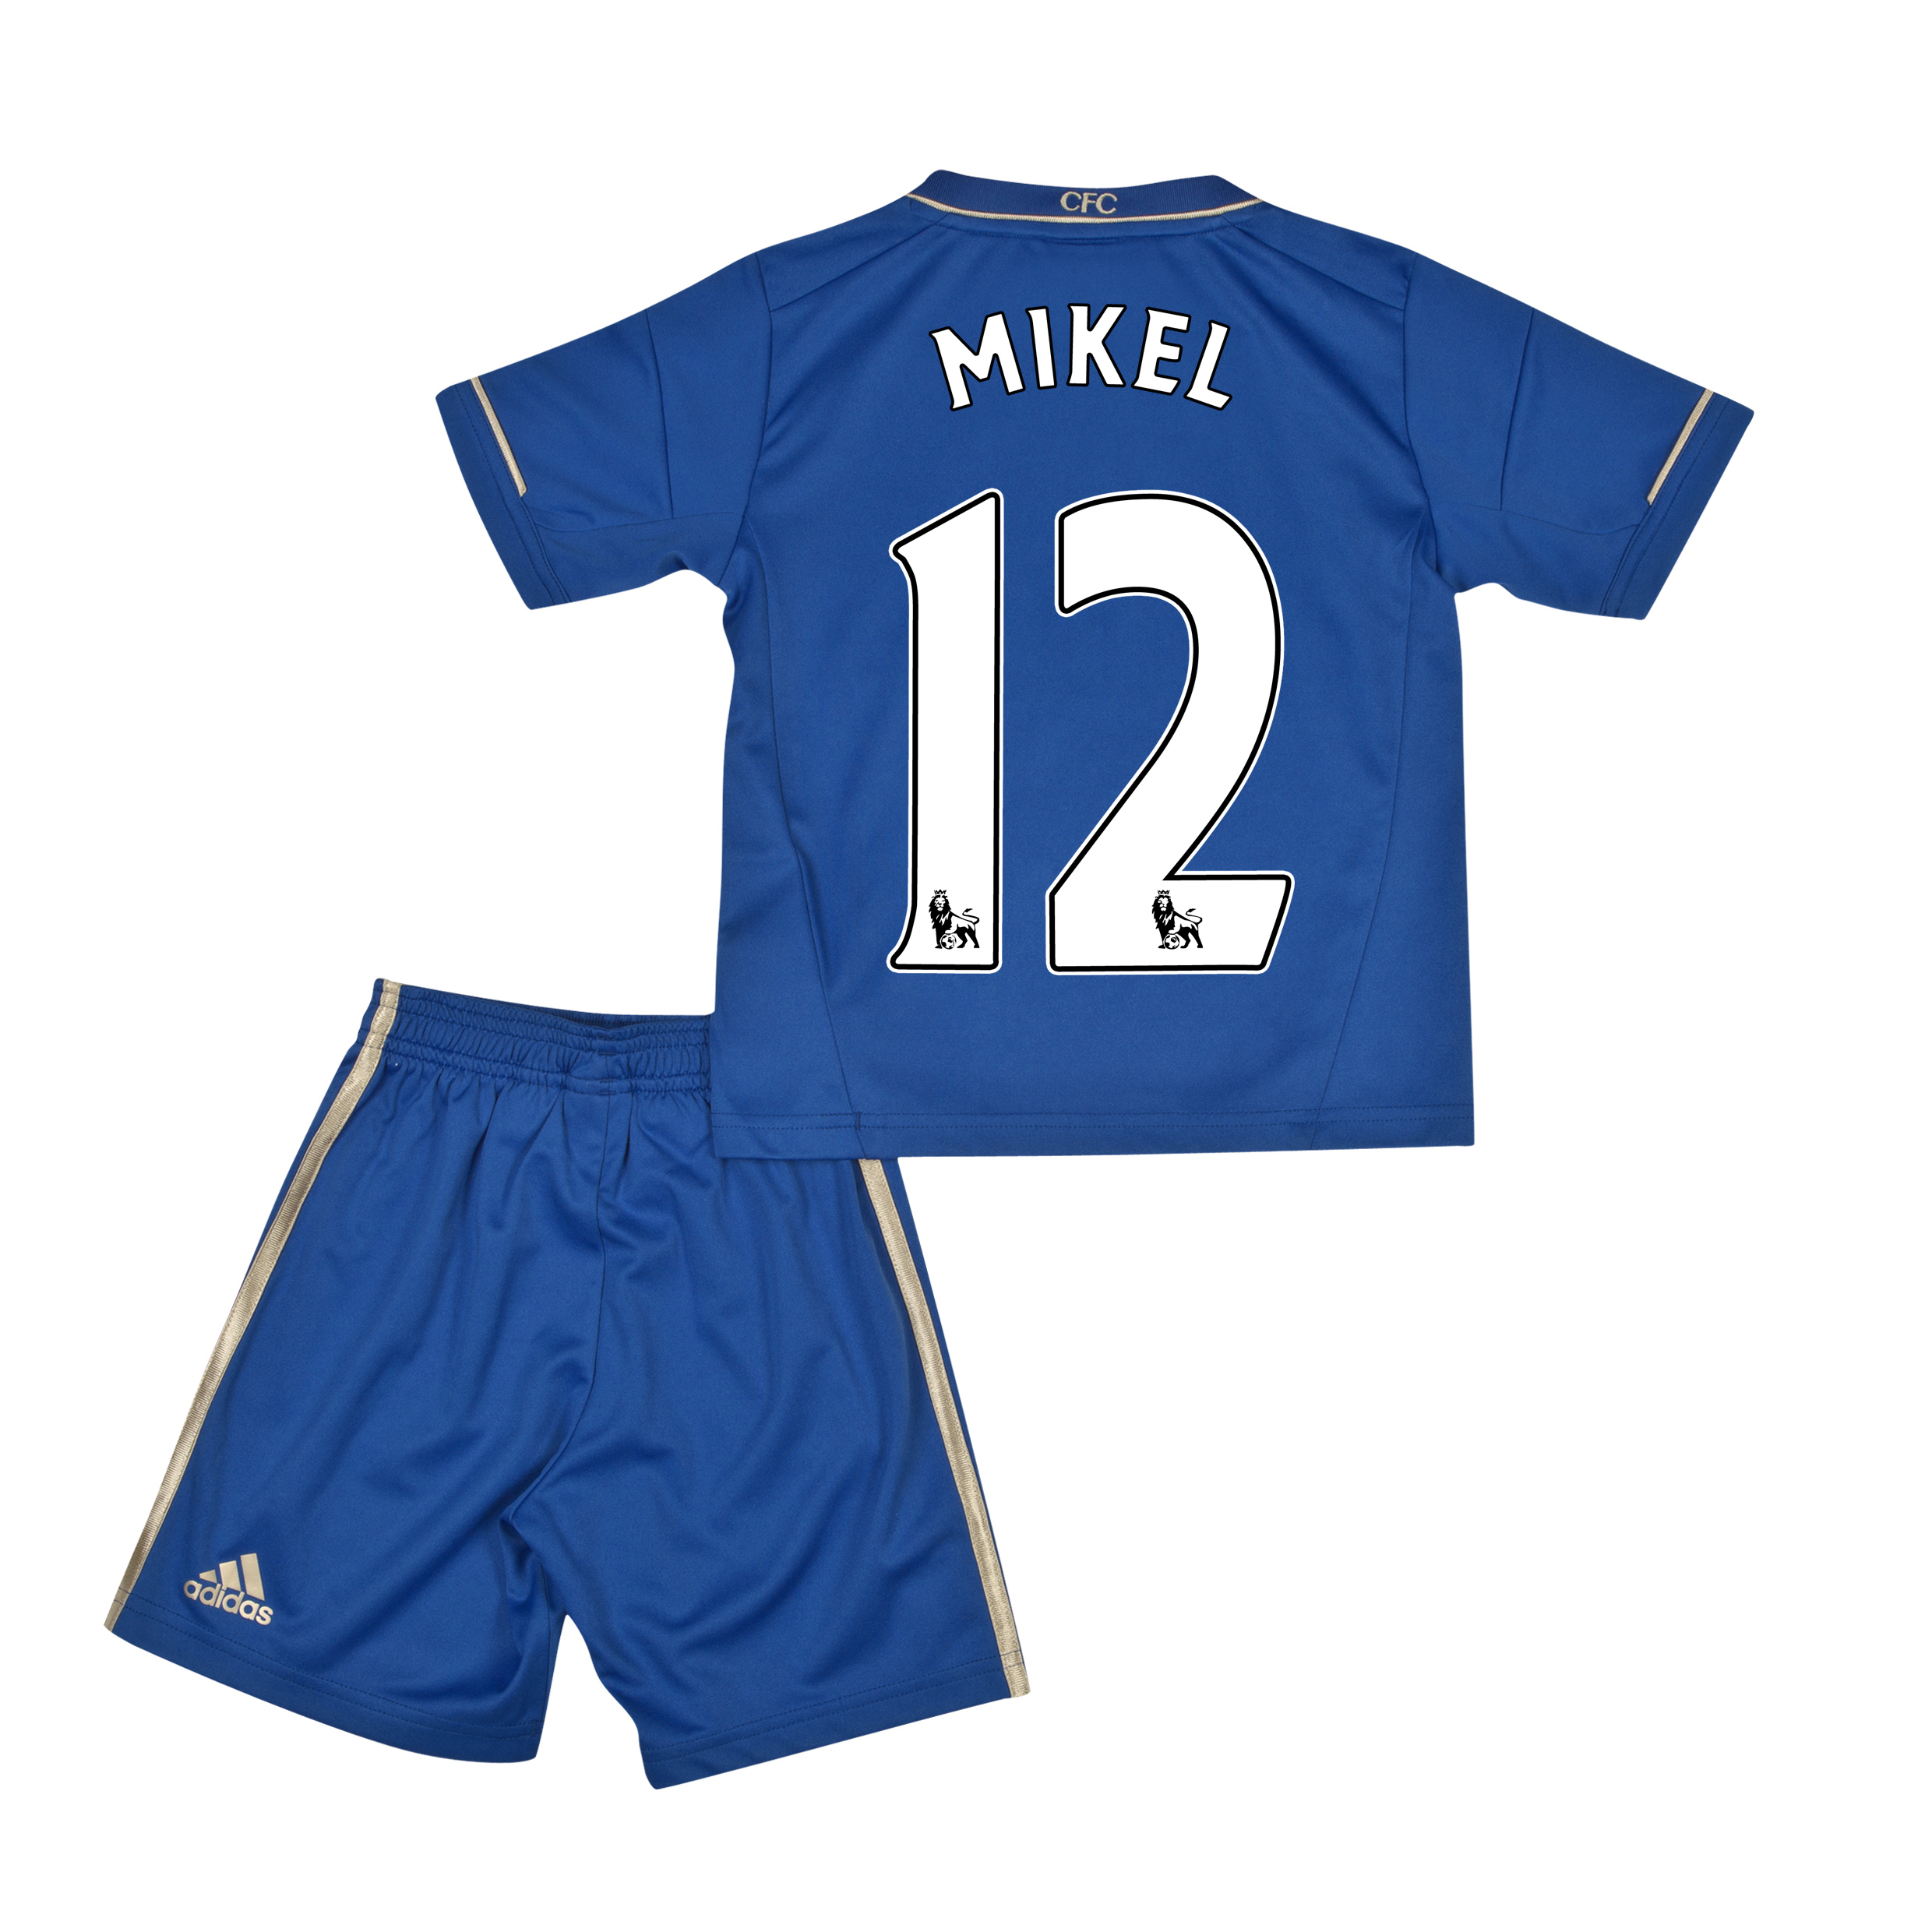 Chelsea Home Mini Kit 2012/13 with Mikel 12 printing